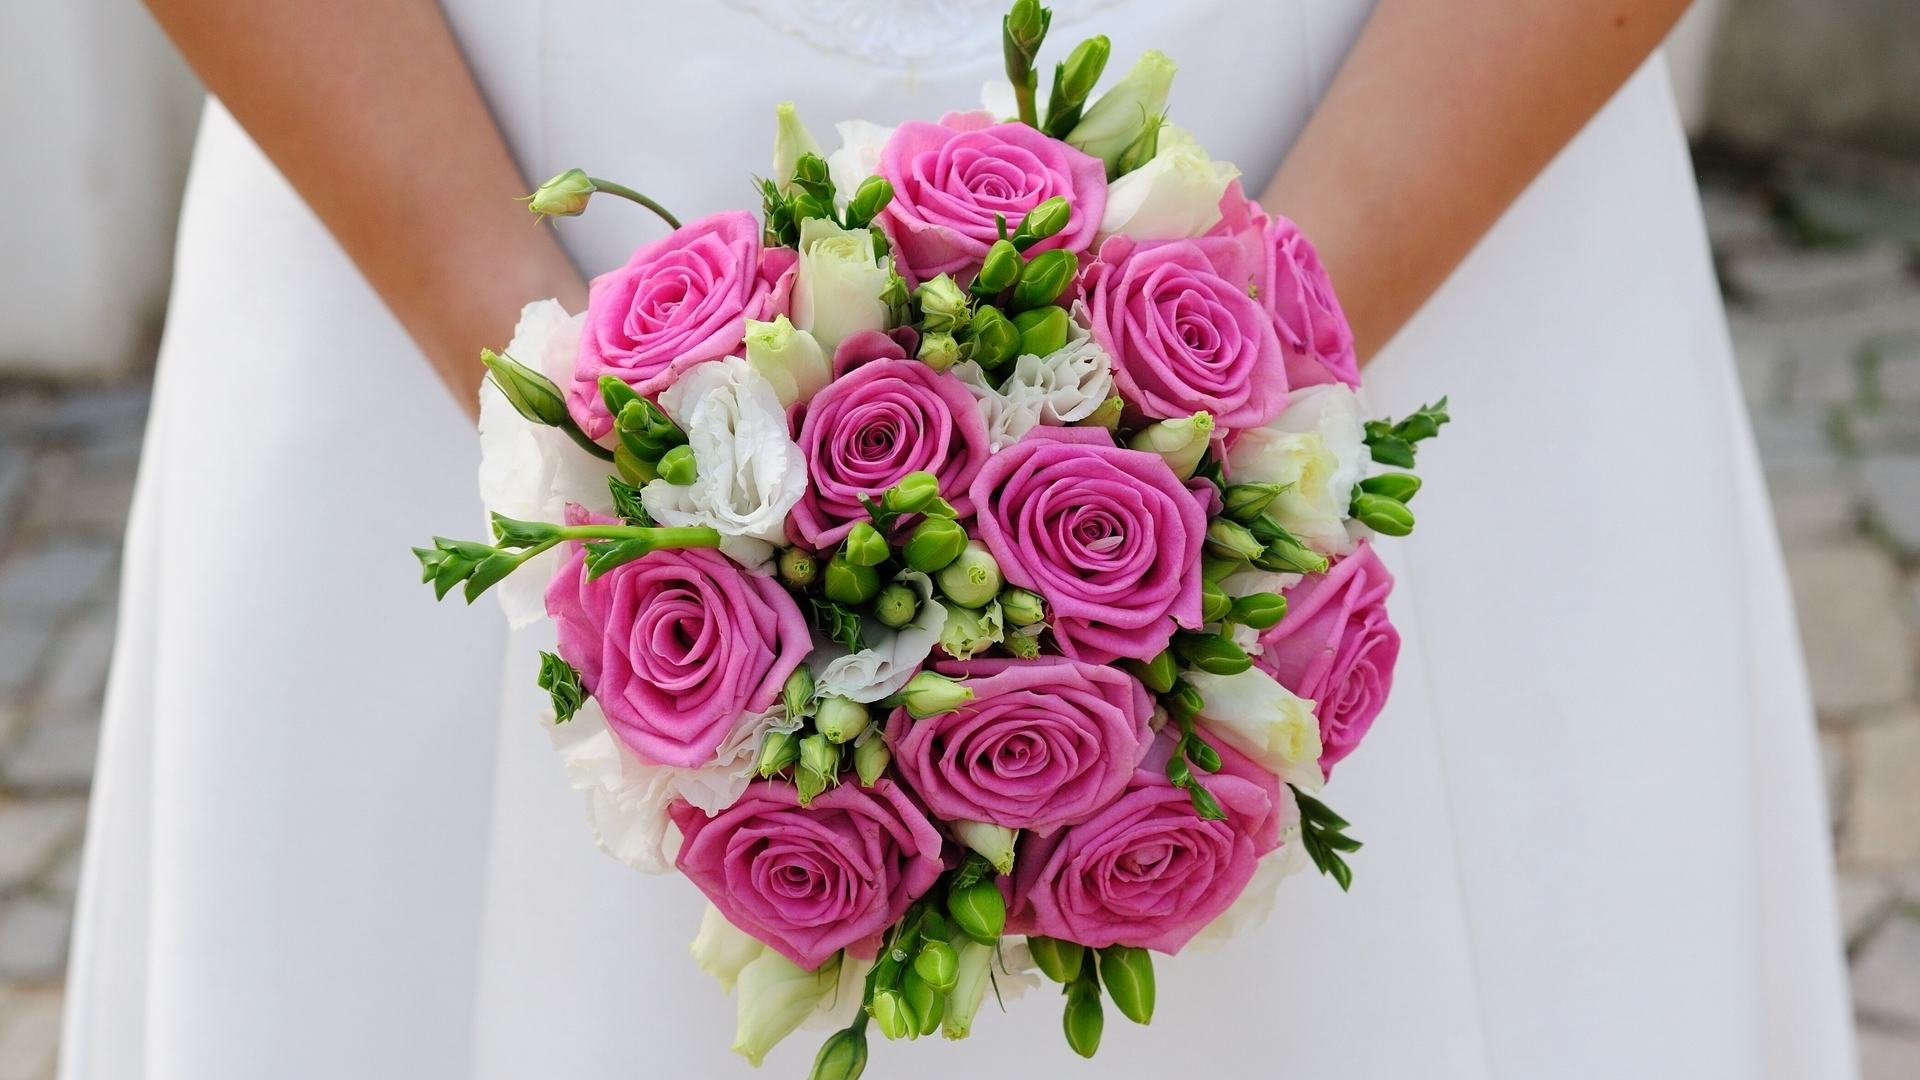 Weddings - April Flowers Florist Stafford